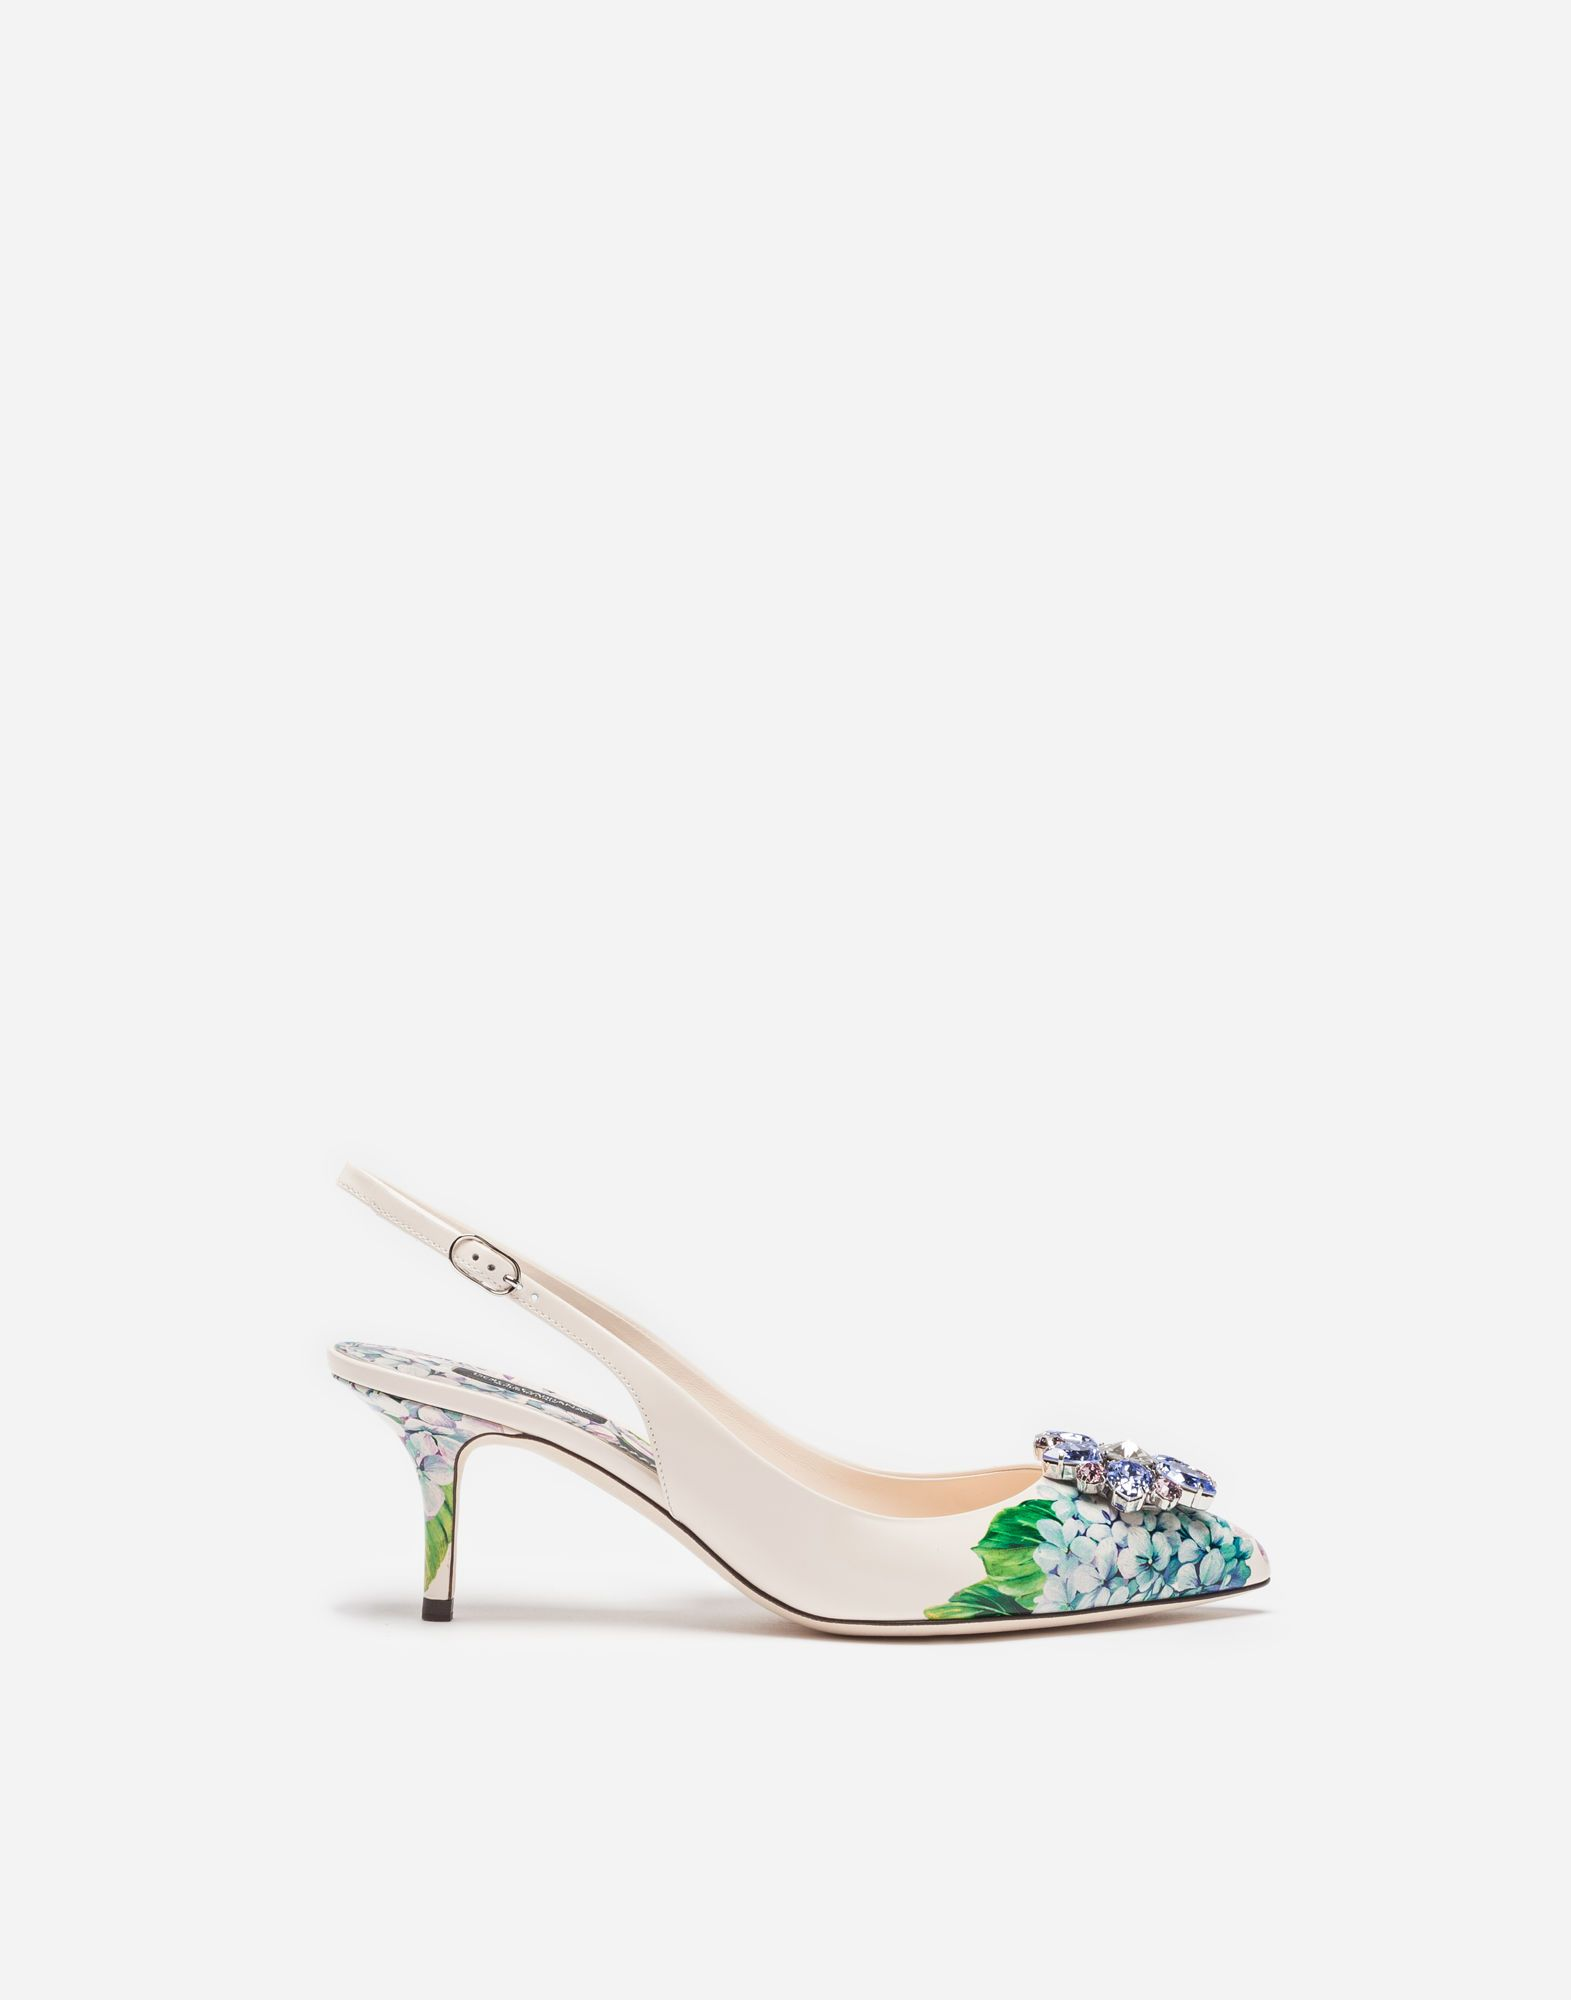 Find the printed leather slingback pumps with bejeweled appliqué for women  in multicolor. Choose from our wide selection on Dolce&Gabbana.